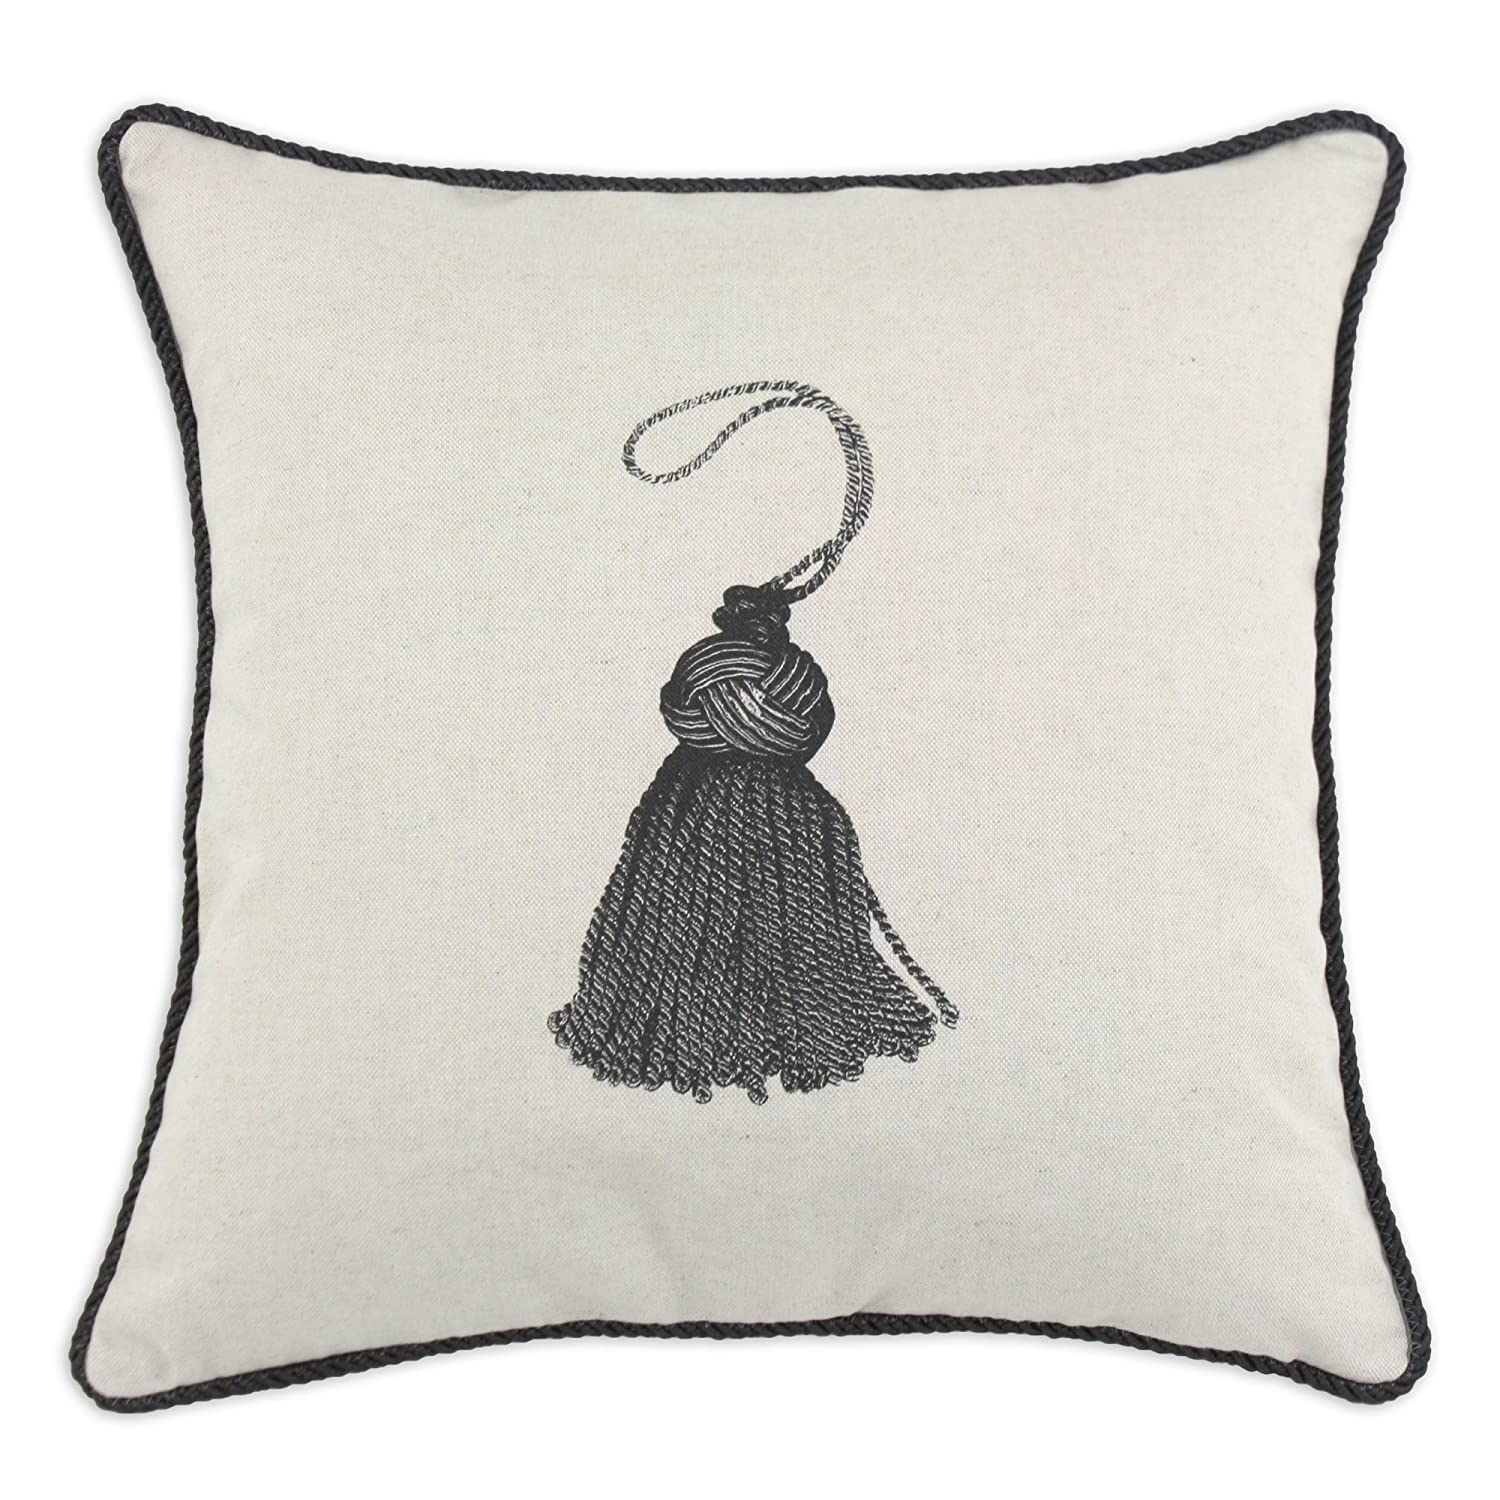 Tassel 17-Inch Spice Home D/écor Graphics Image Linen and Cotton Blend Throw Pillow